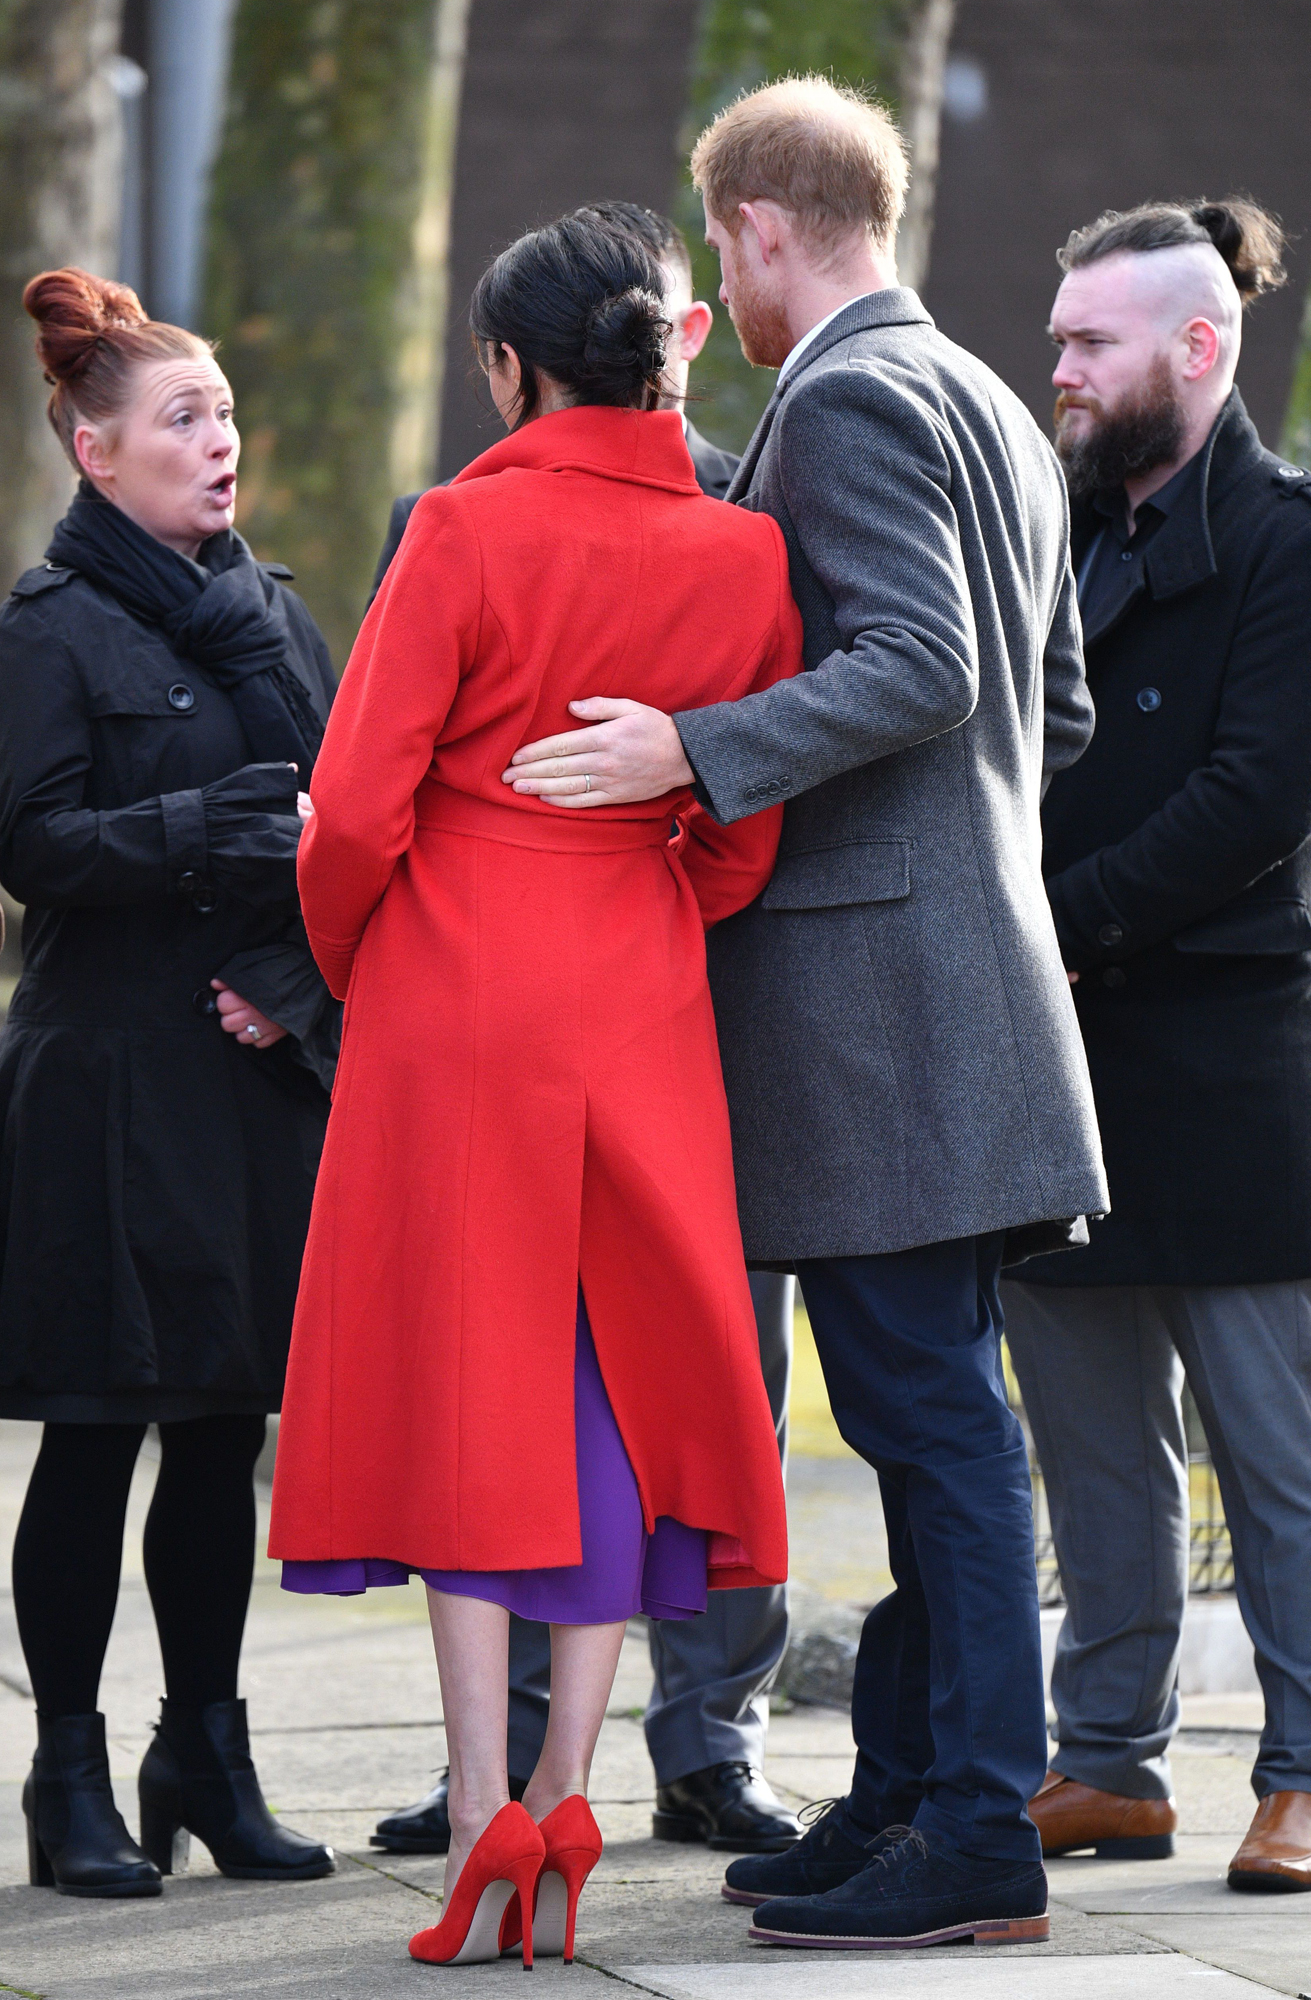 Prince Harry and Meghan Duchess of Sussex visit to Birkenhead, UK - 14 Jan 2019